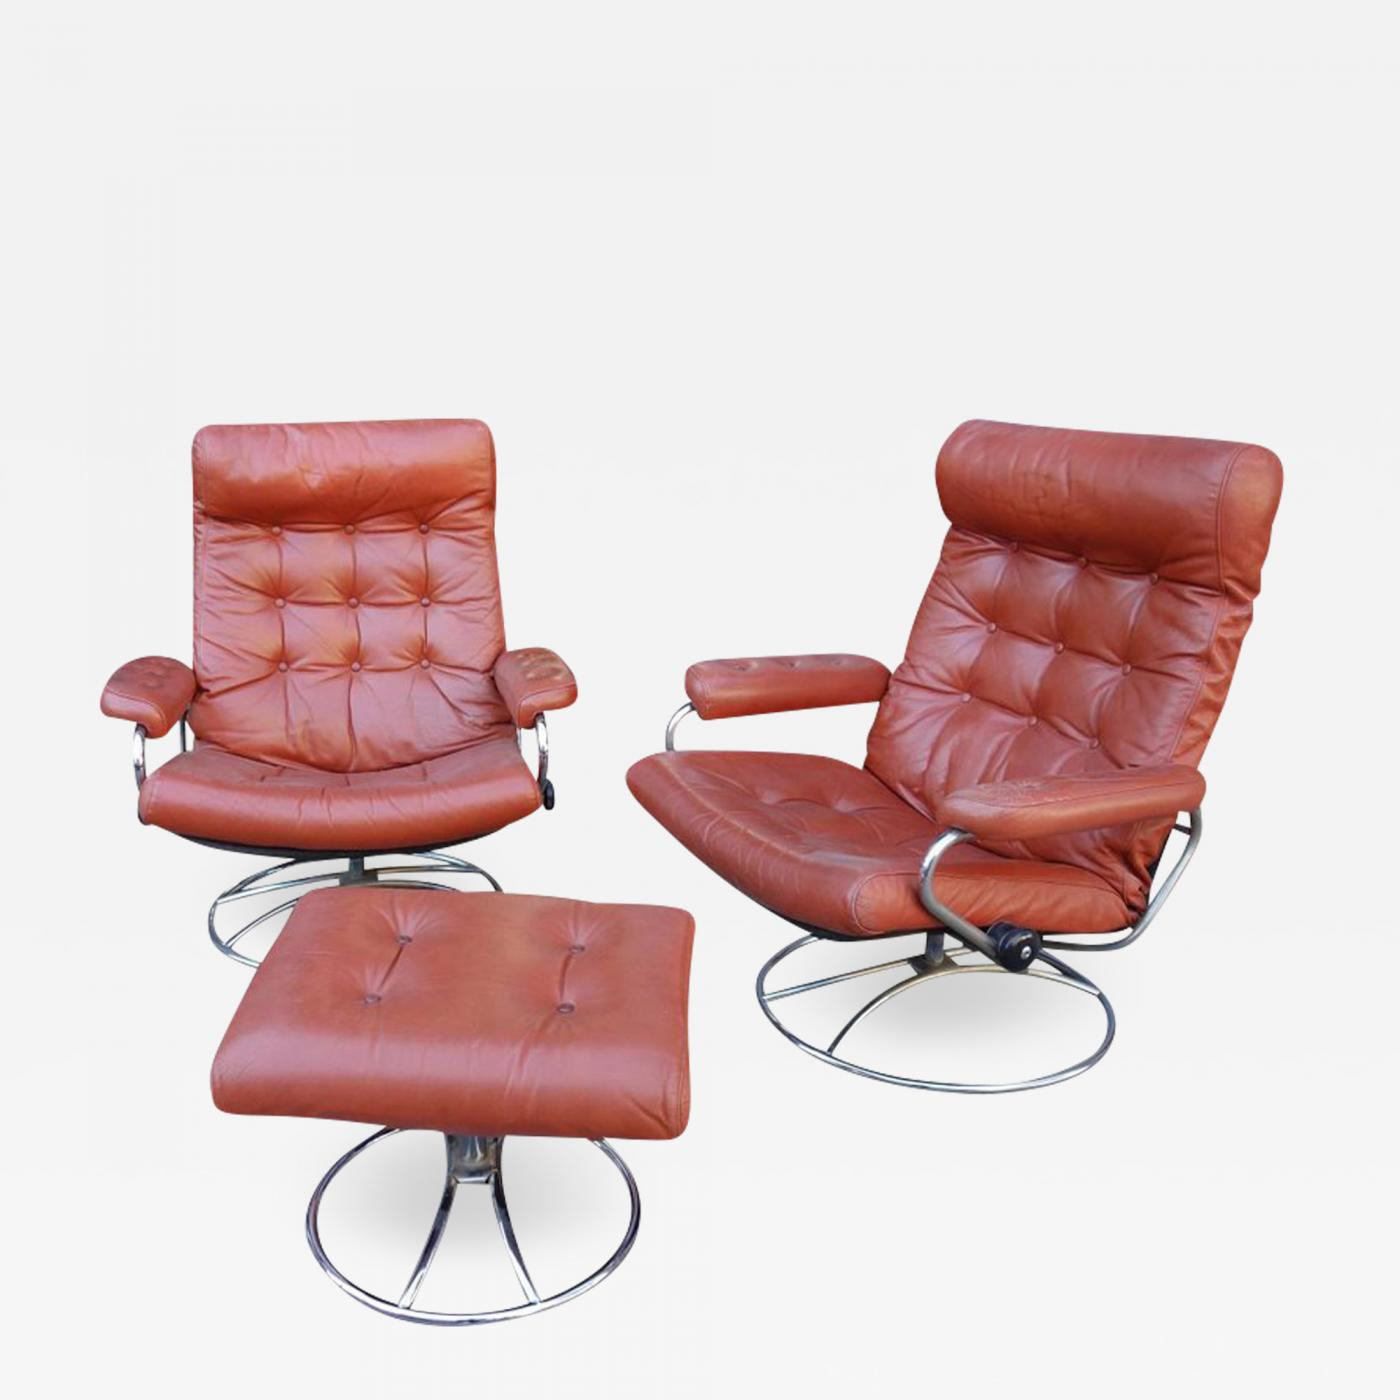 Stressless Sofa Dealers Ekornes Stressless Midcentury Reclining Stress Less Lounge Chairs And Ottoman By Ekornes